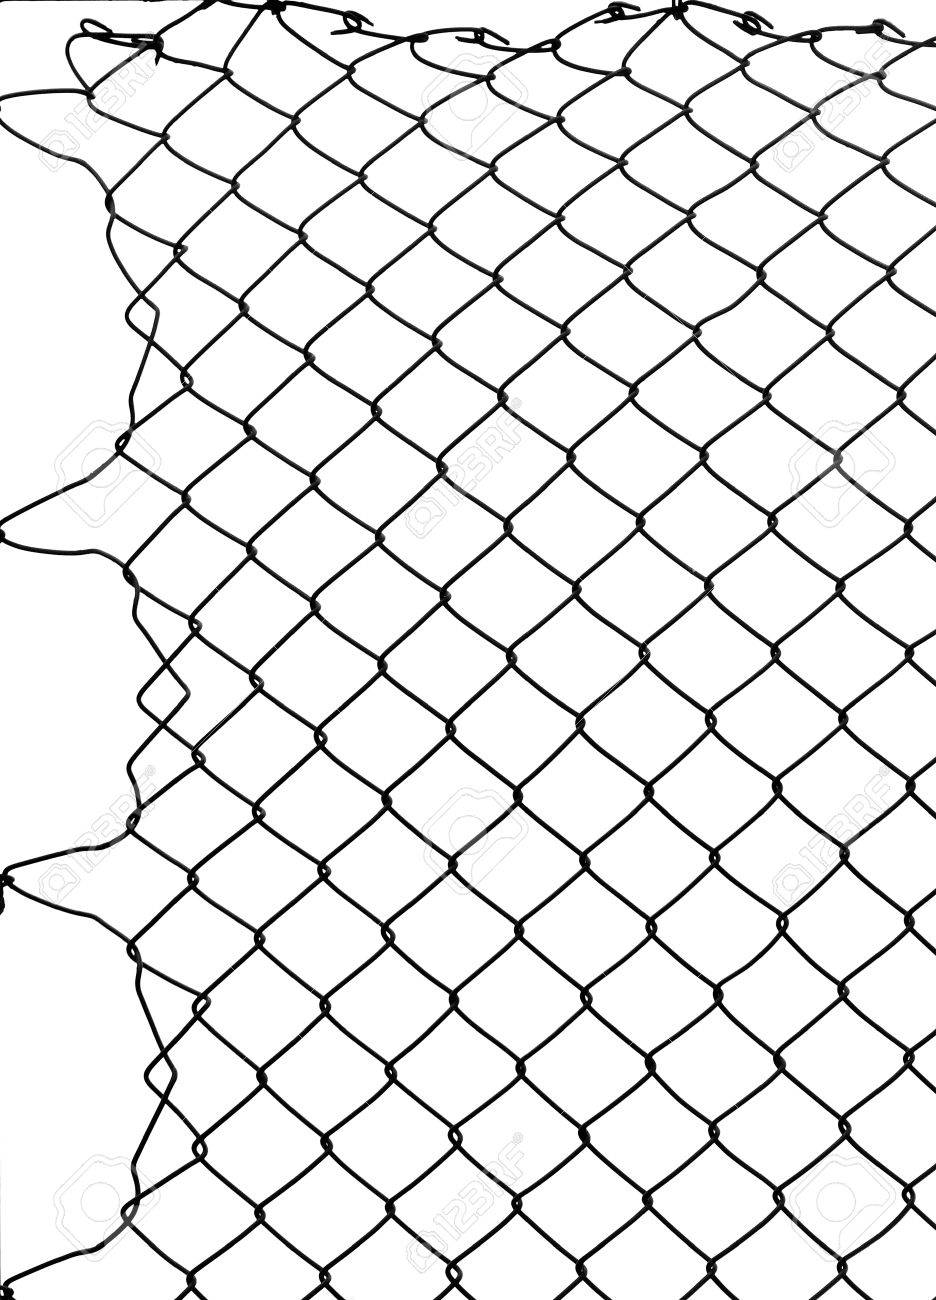 Damage Wire Mesh Stock Photo, Picture And Royalty Free Image. Image ...